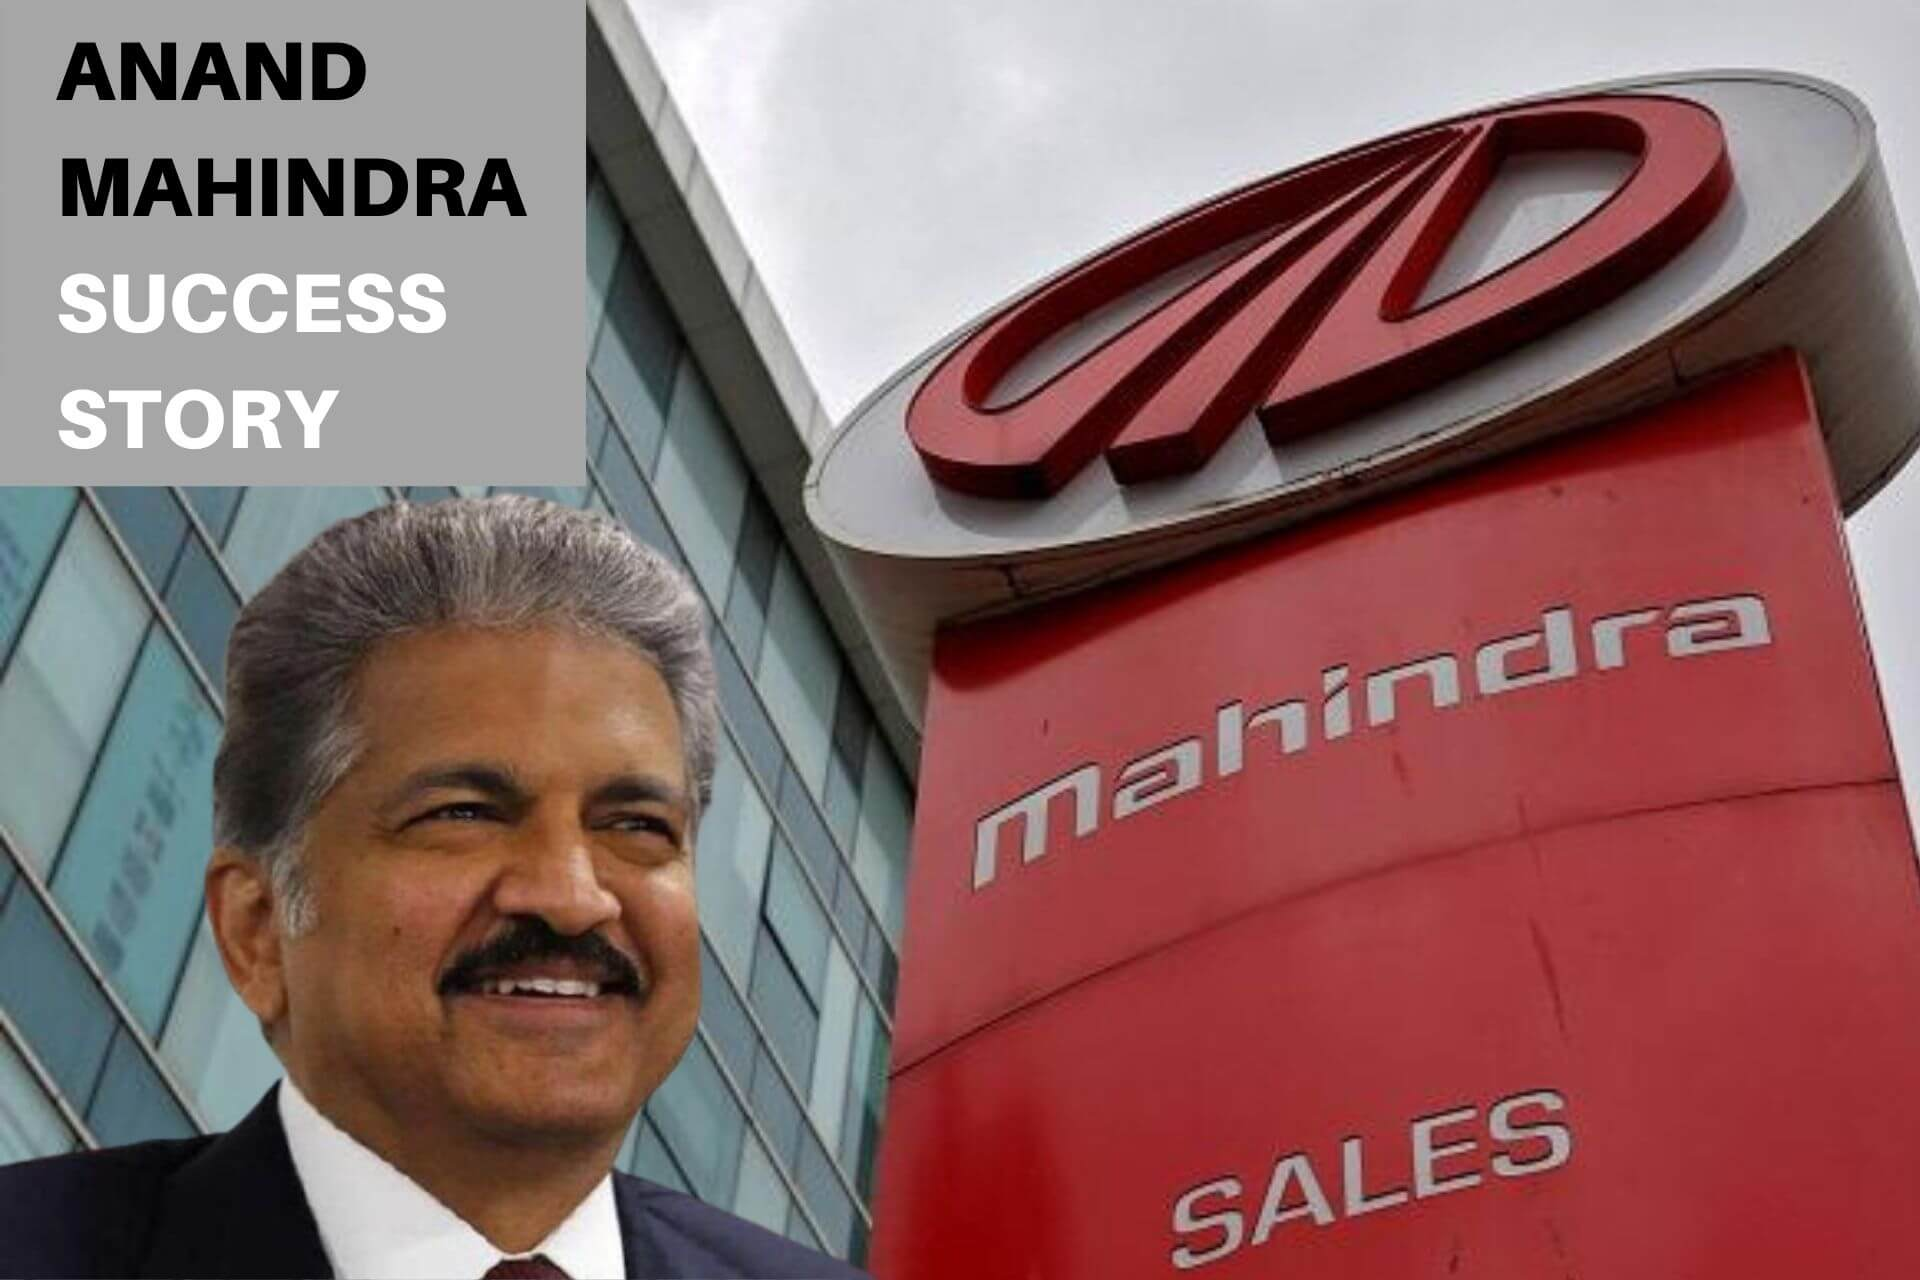 Anand Mahindra's Success Story cover